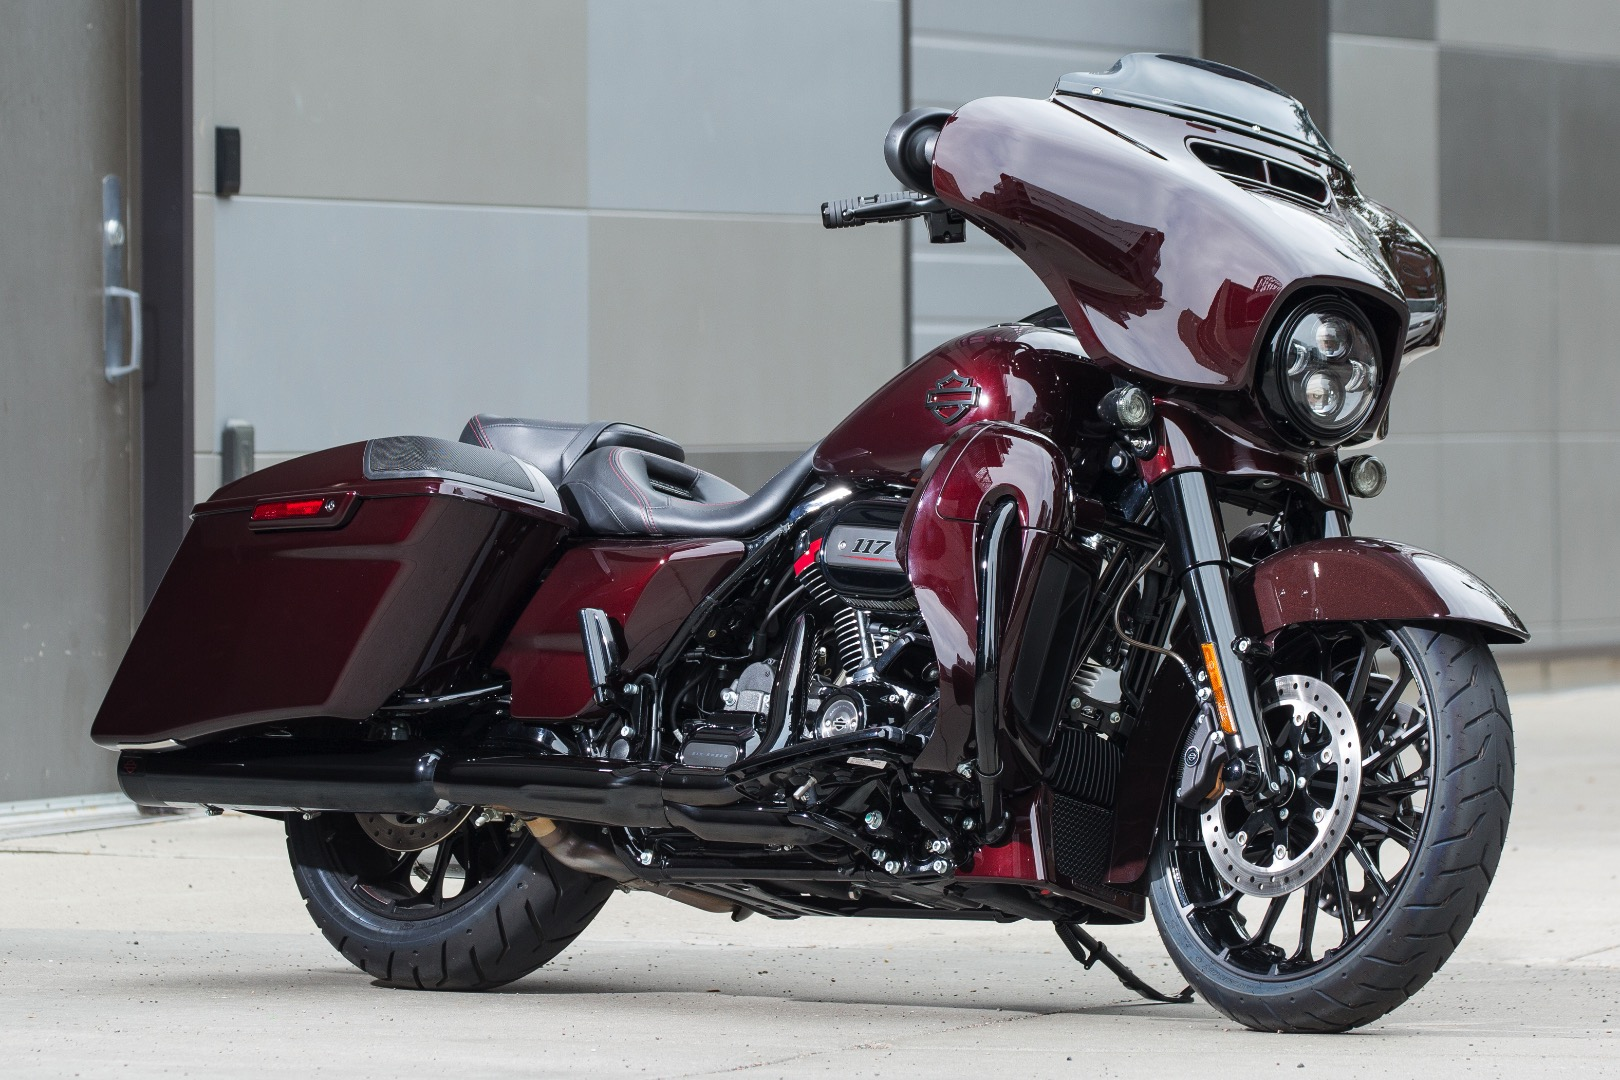 2019 Harley Davidson CVO Street Glide Specifications - Life Change